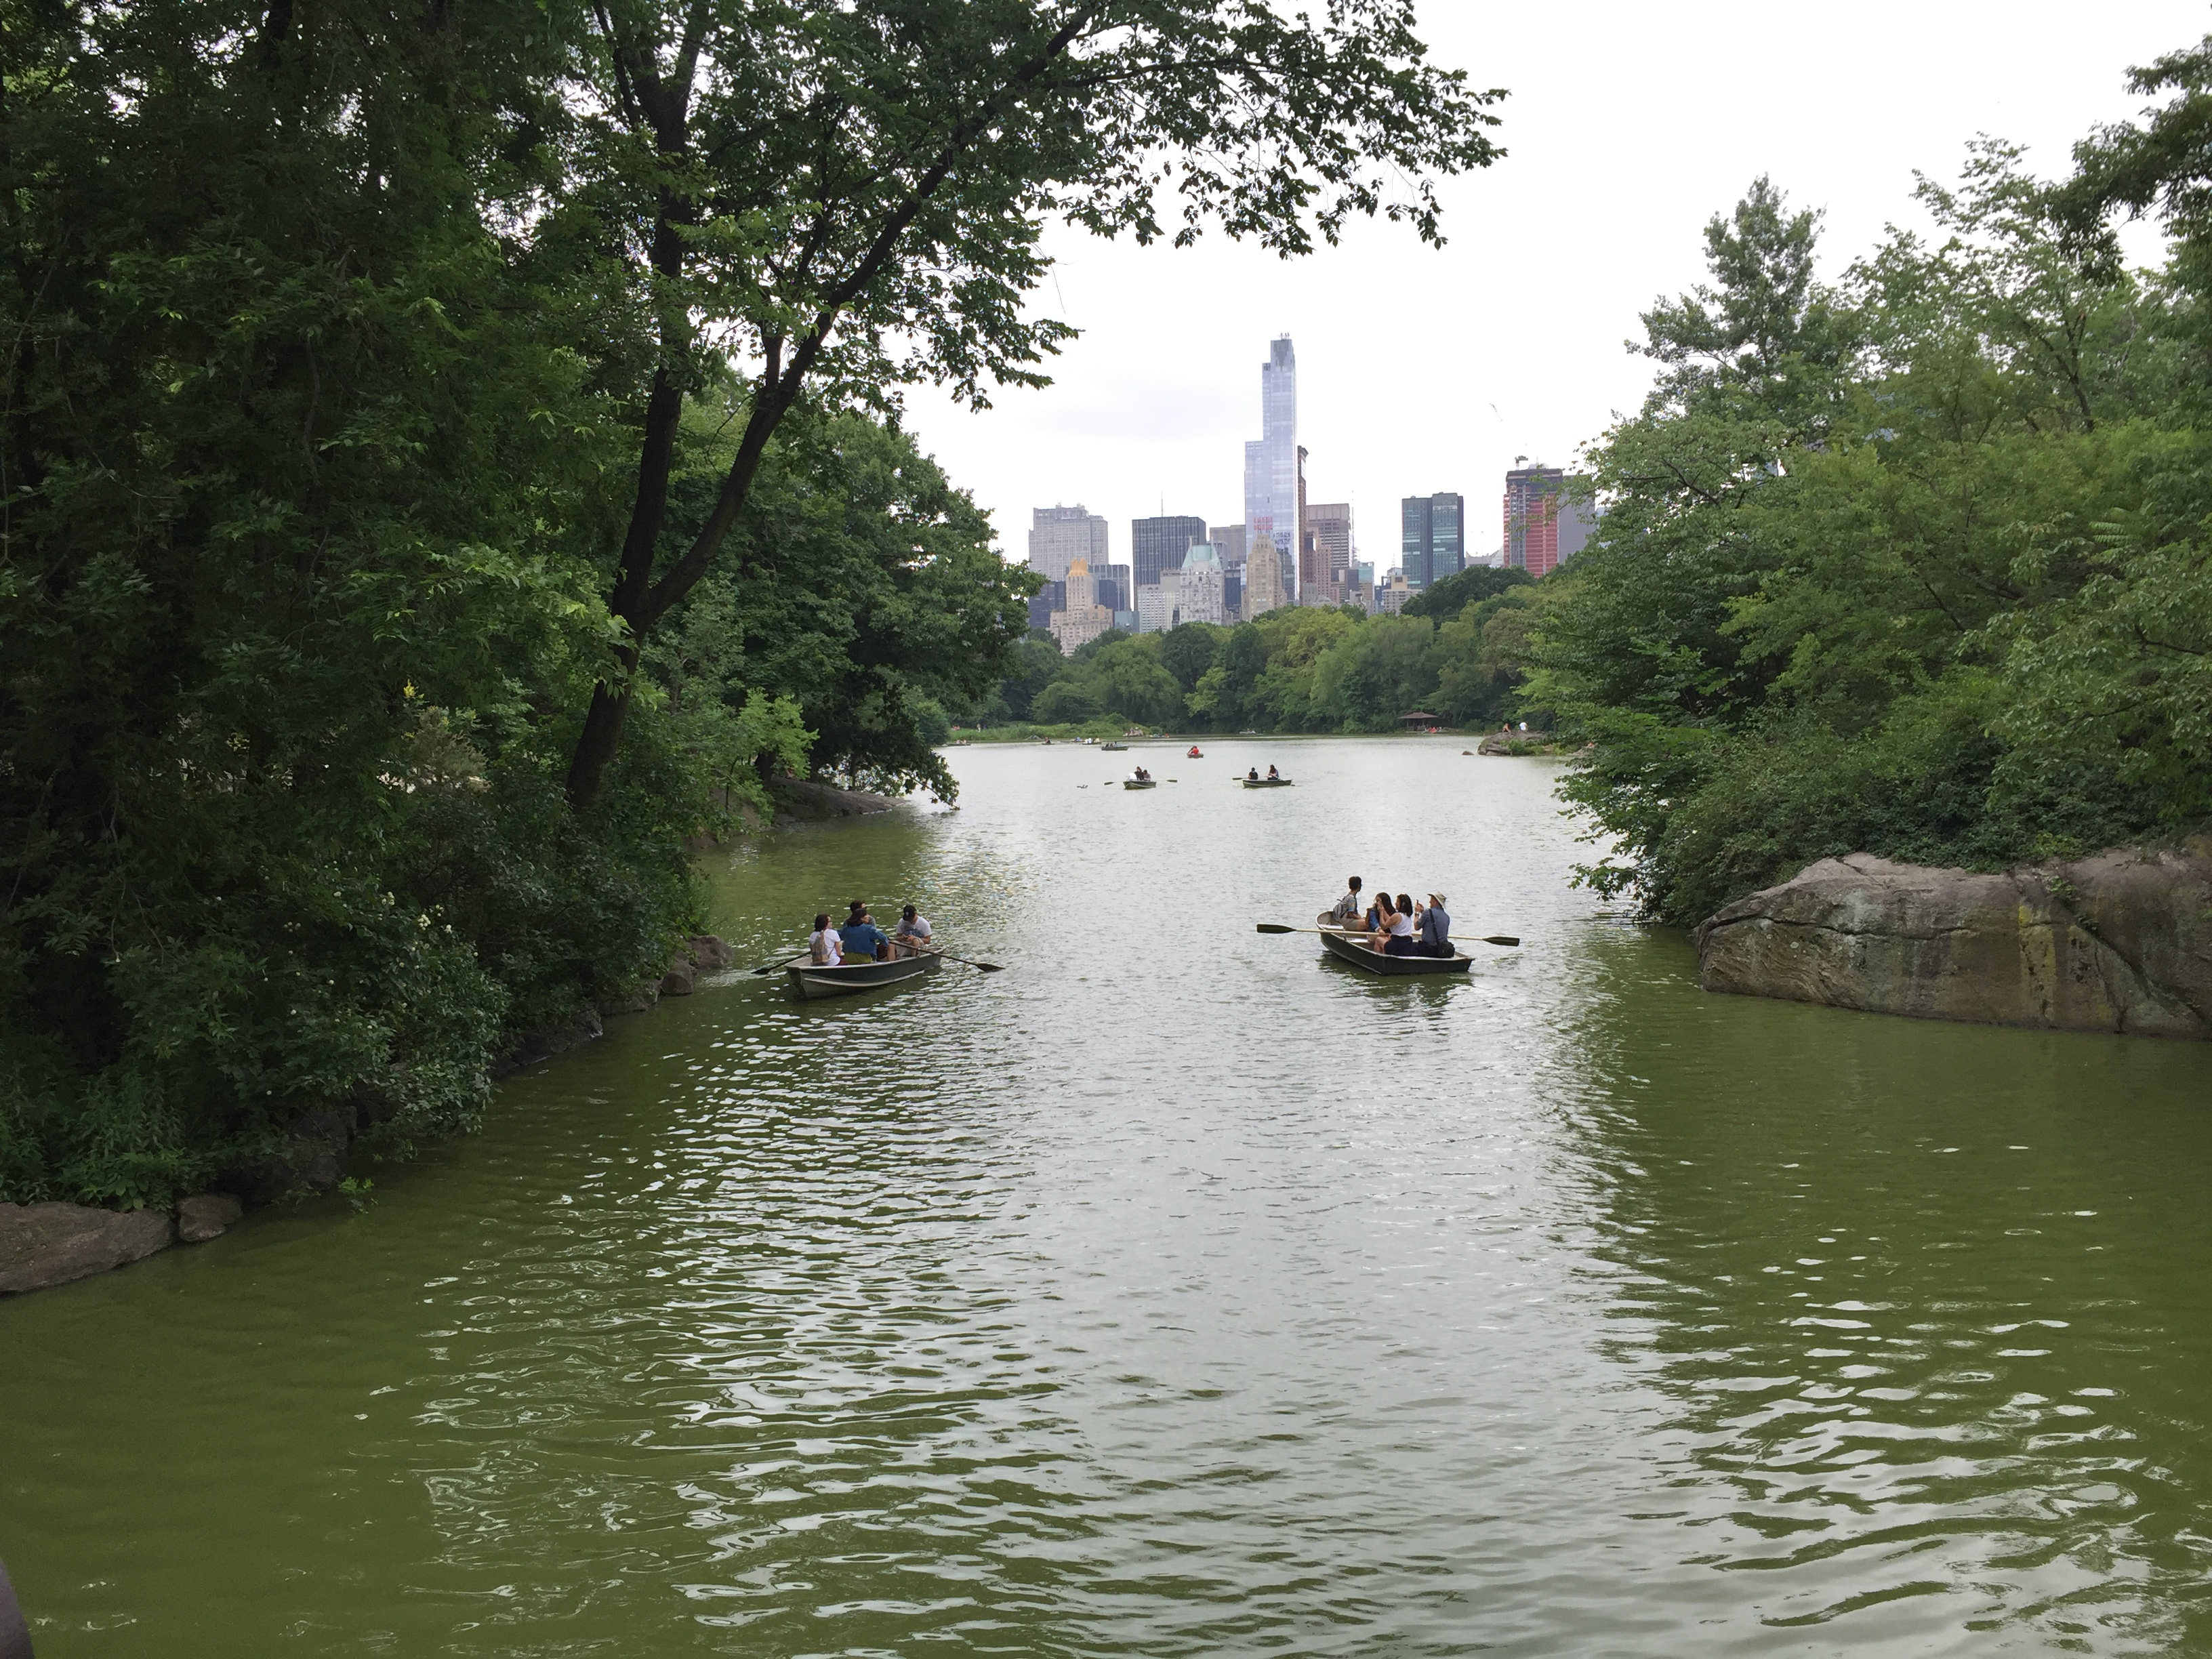 Canoeists and boaters in Central Park Lake overlooking the New York City skyline